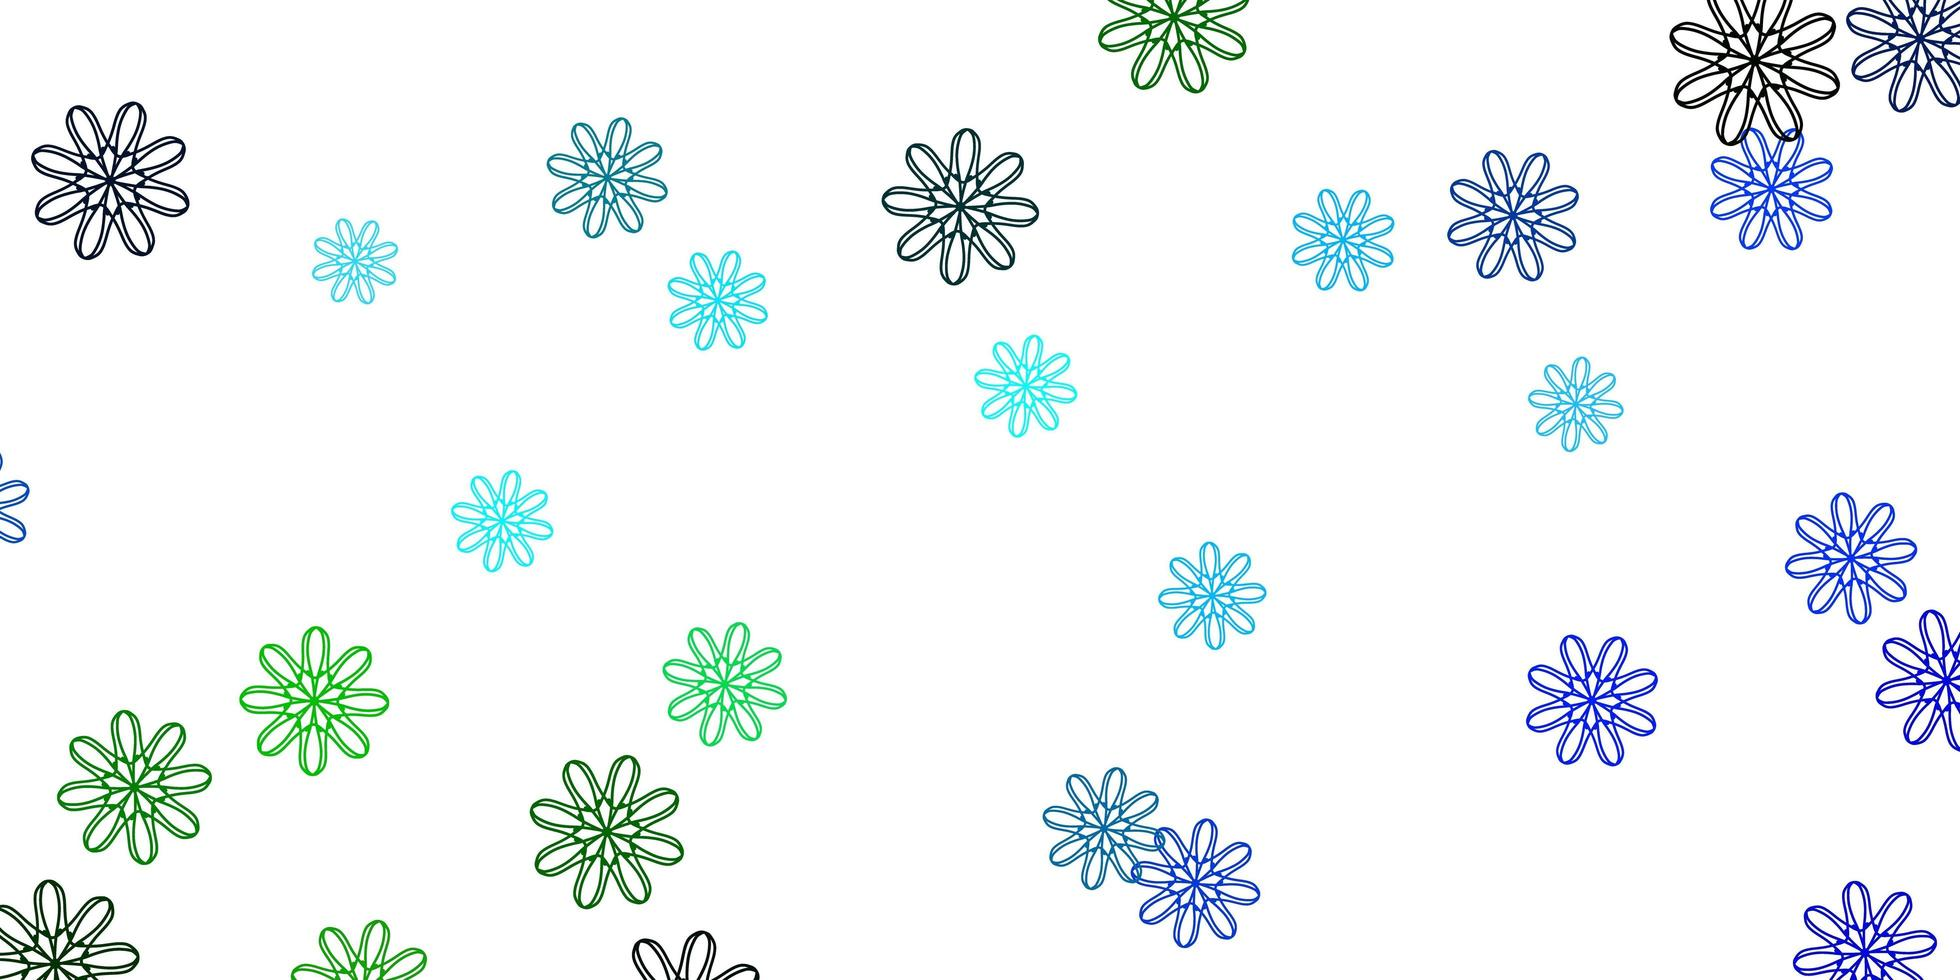 Light Blue, Green natural artwork with flowers. vector